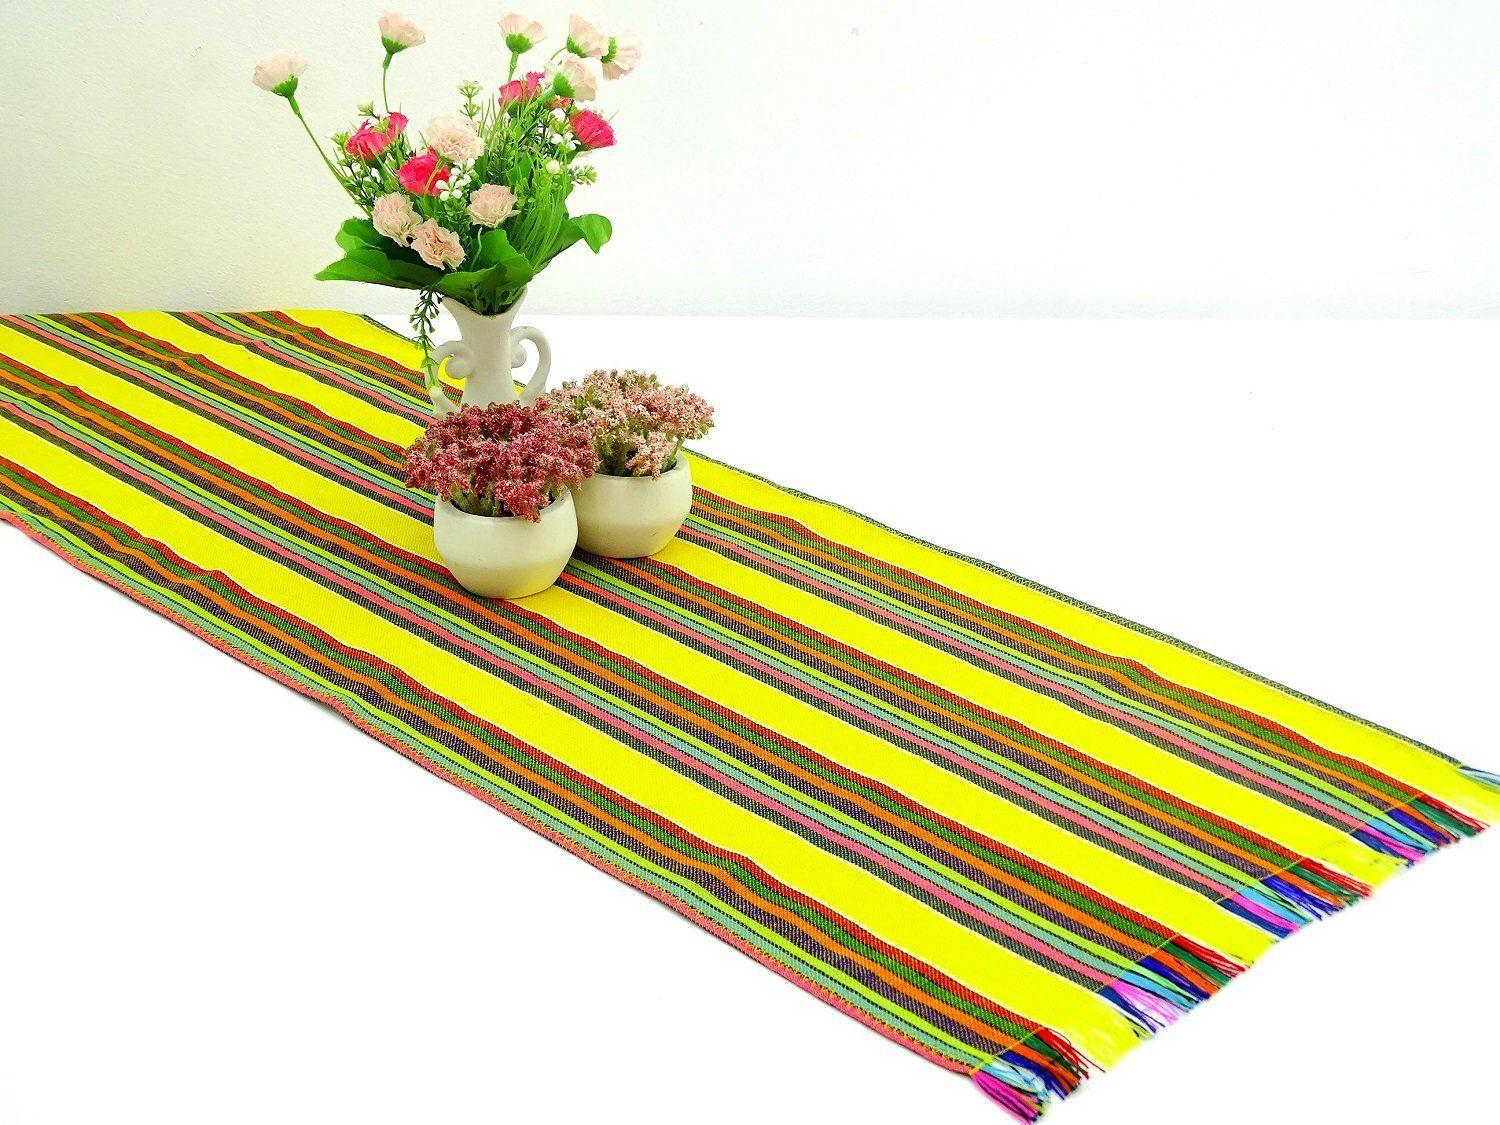 Mexican Table Runner - Mexican Table Runner, Yellow Table Runner 14x72 Inches, Fiesta Decoration, Cinco De Mayo, Boho Chic Decor, Fiesta Decor Linens.